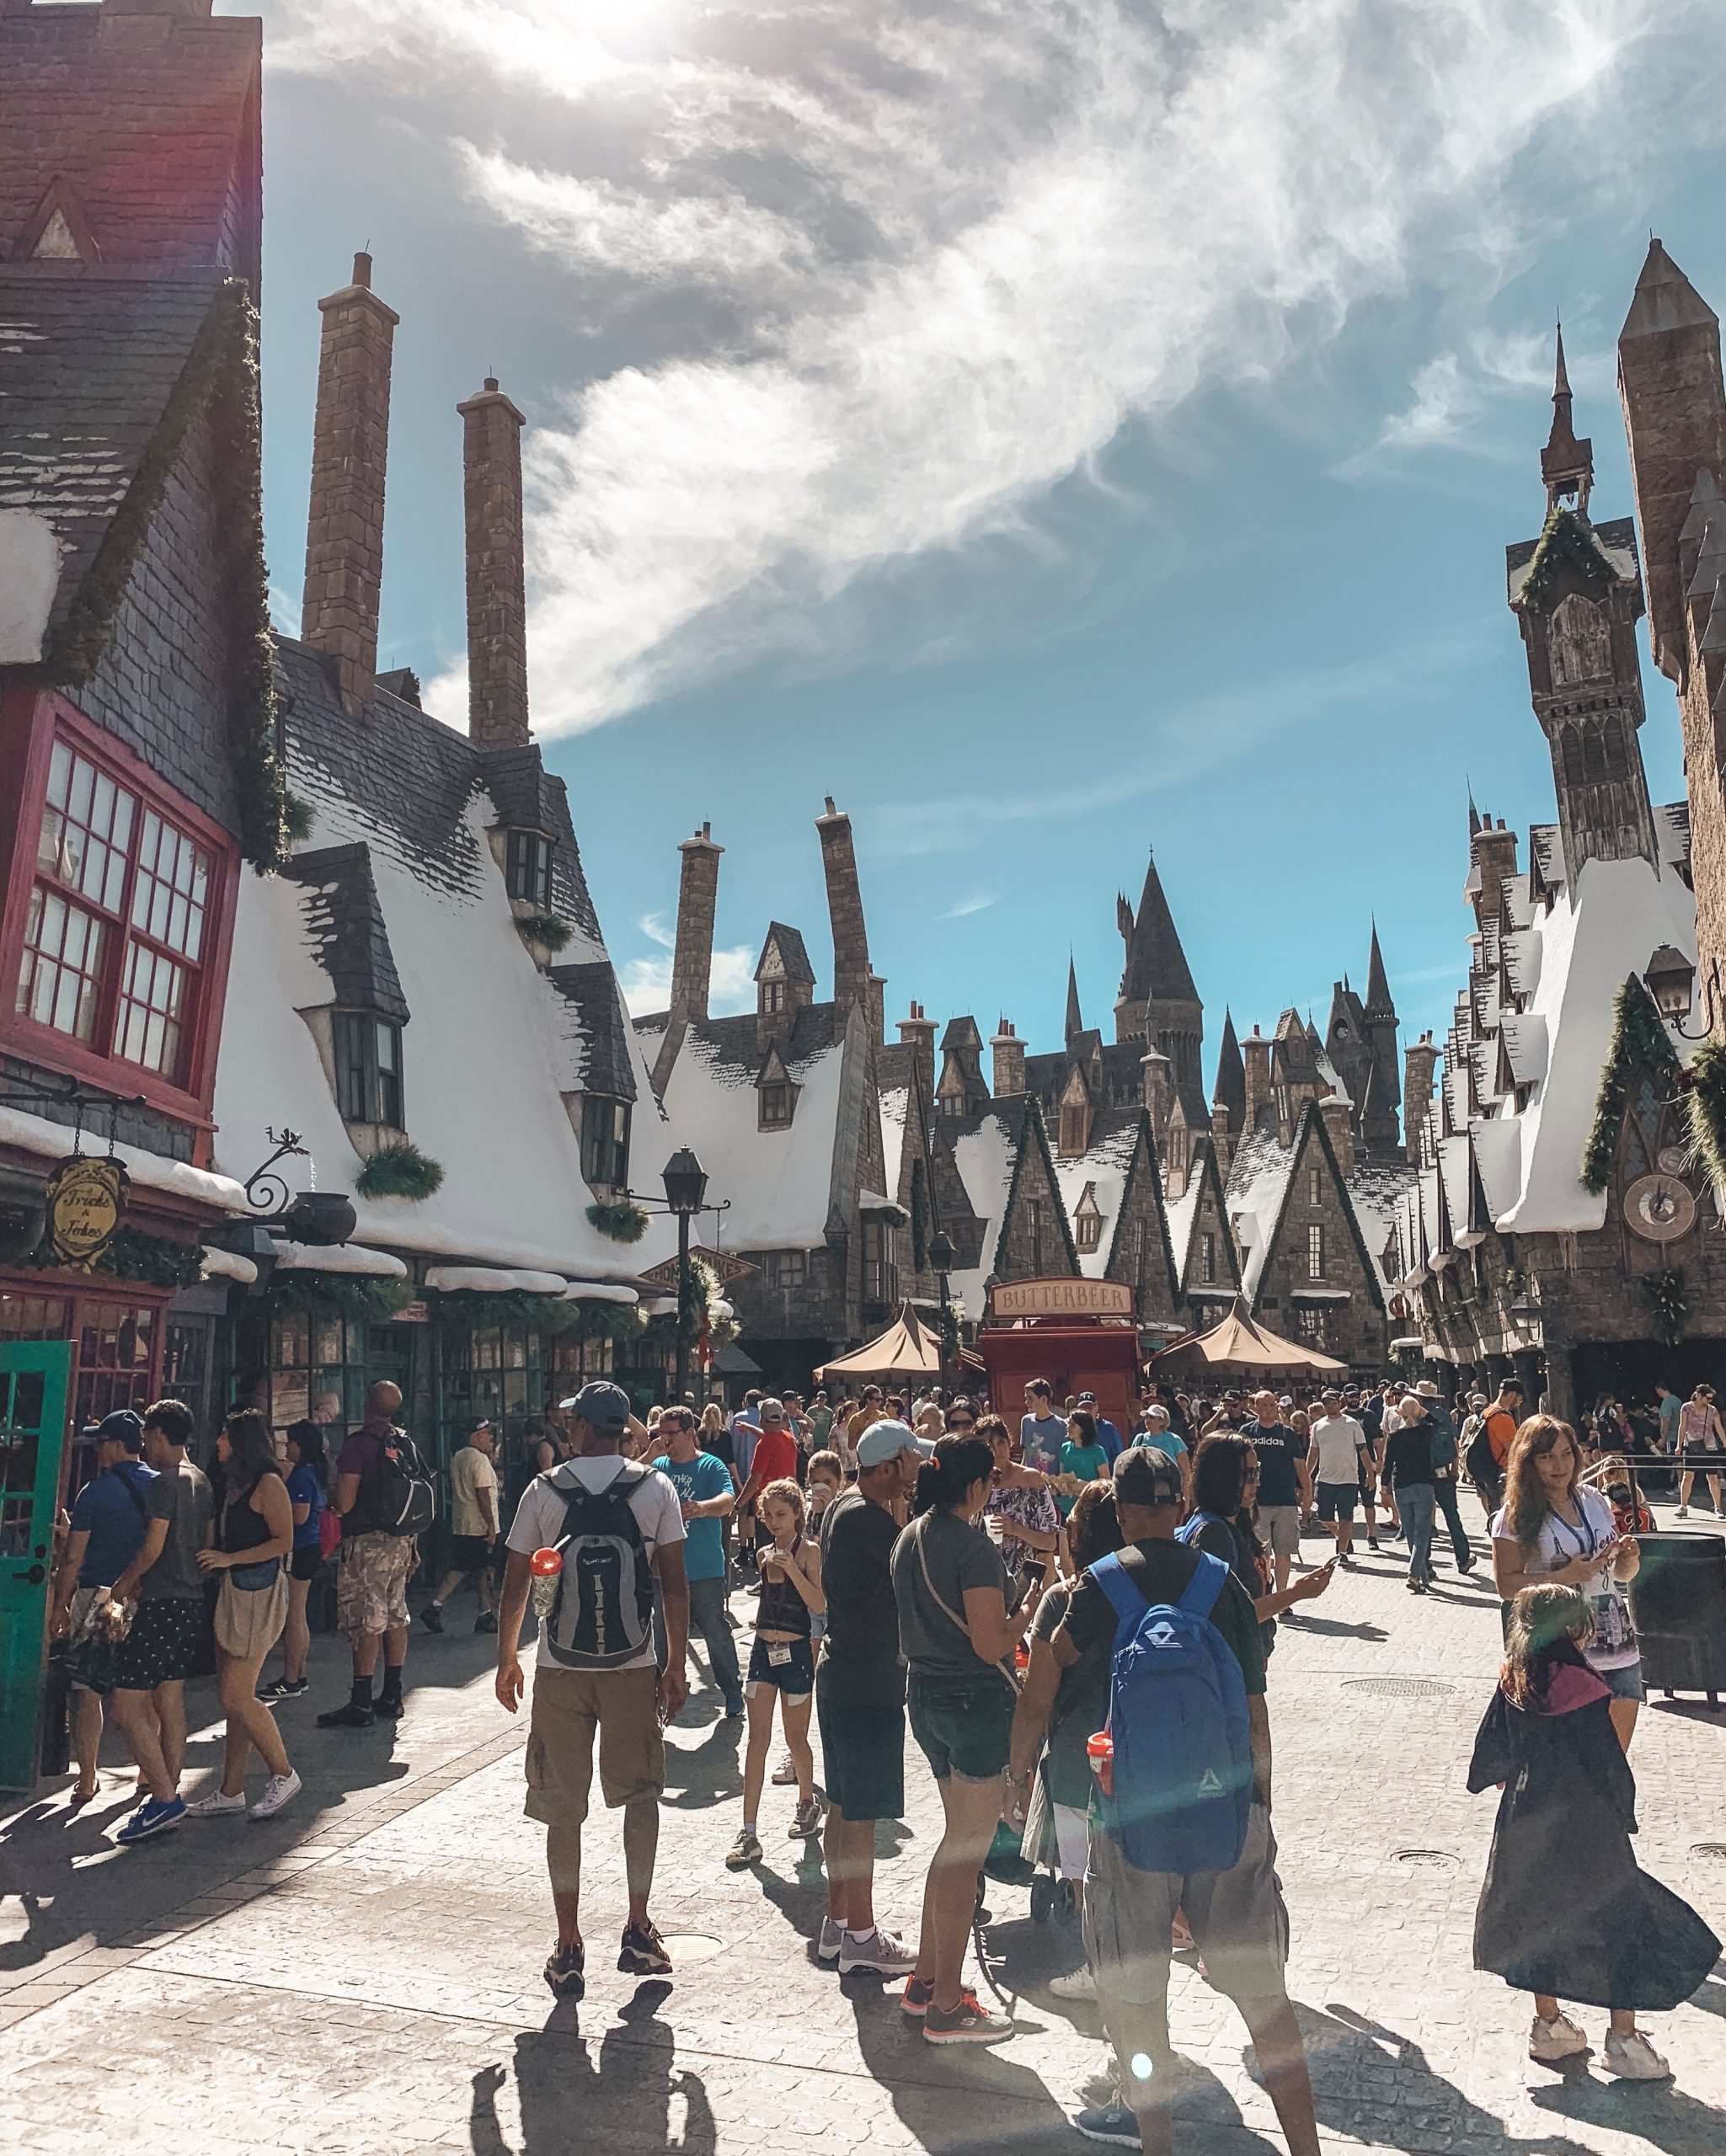 a picture of hogsmeade at The Wizarding World of Harry Potter